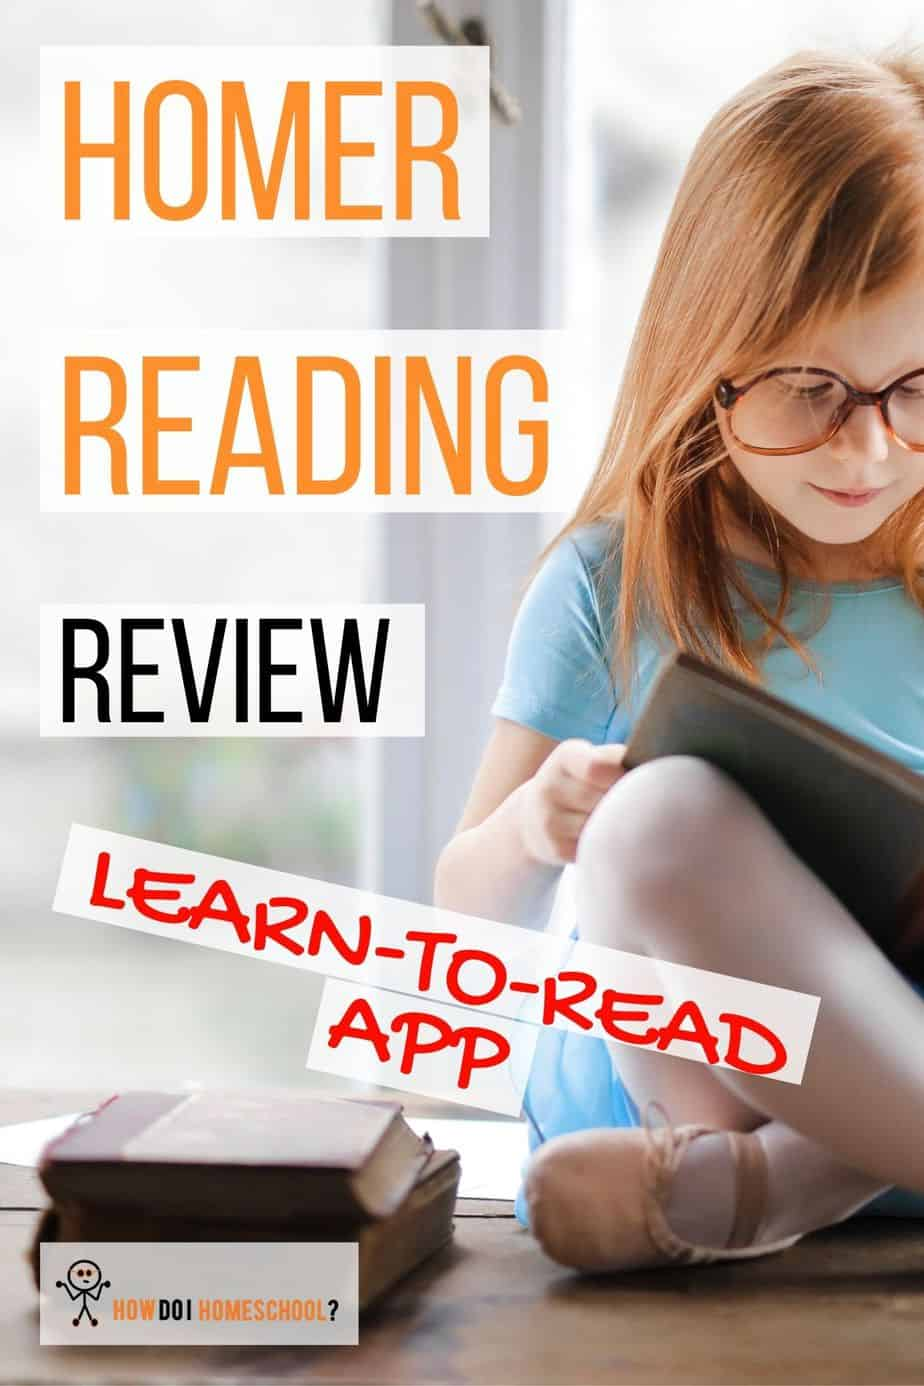 Wondering what learn-to-read program you should use? Check out the Homer Reading app. This program uses phonics and sight words in a fun, colorful presentation to engage students. Check out this review here. #homerreadingreview #homerapp